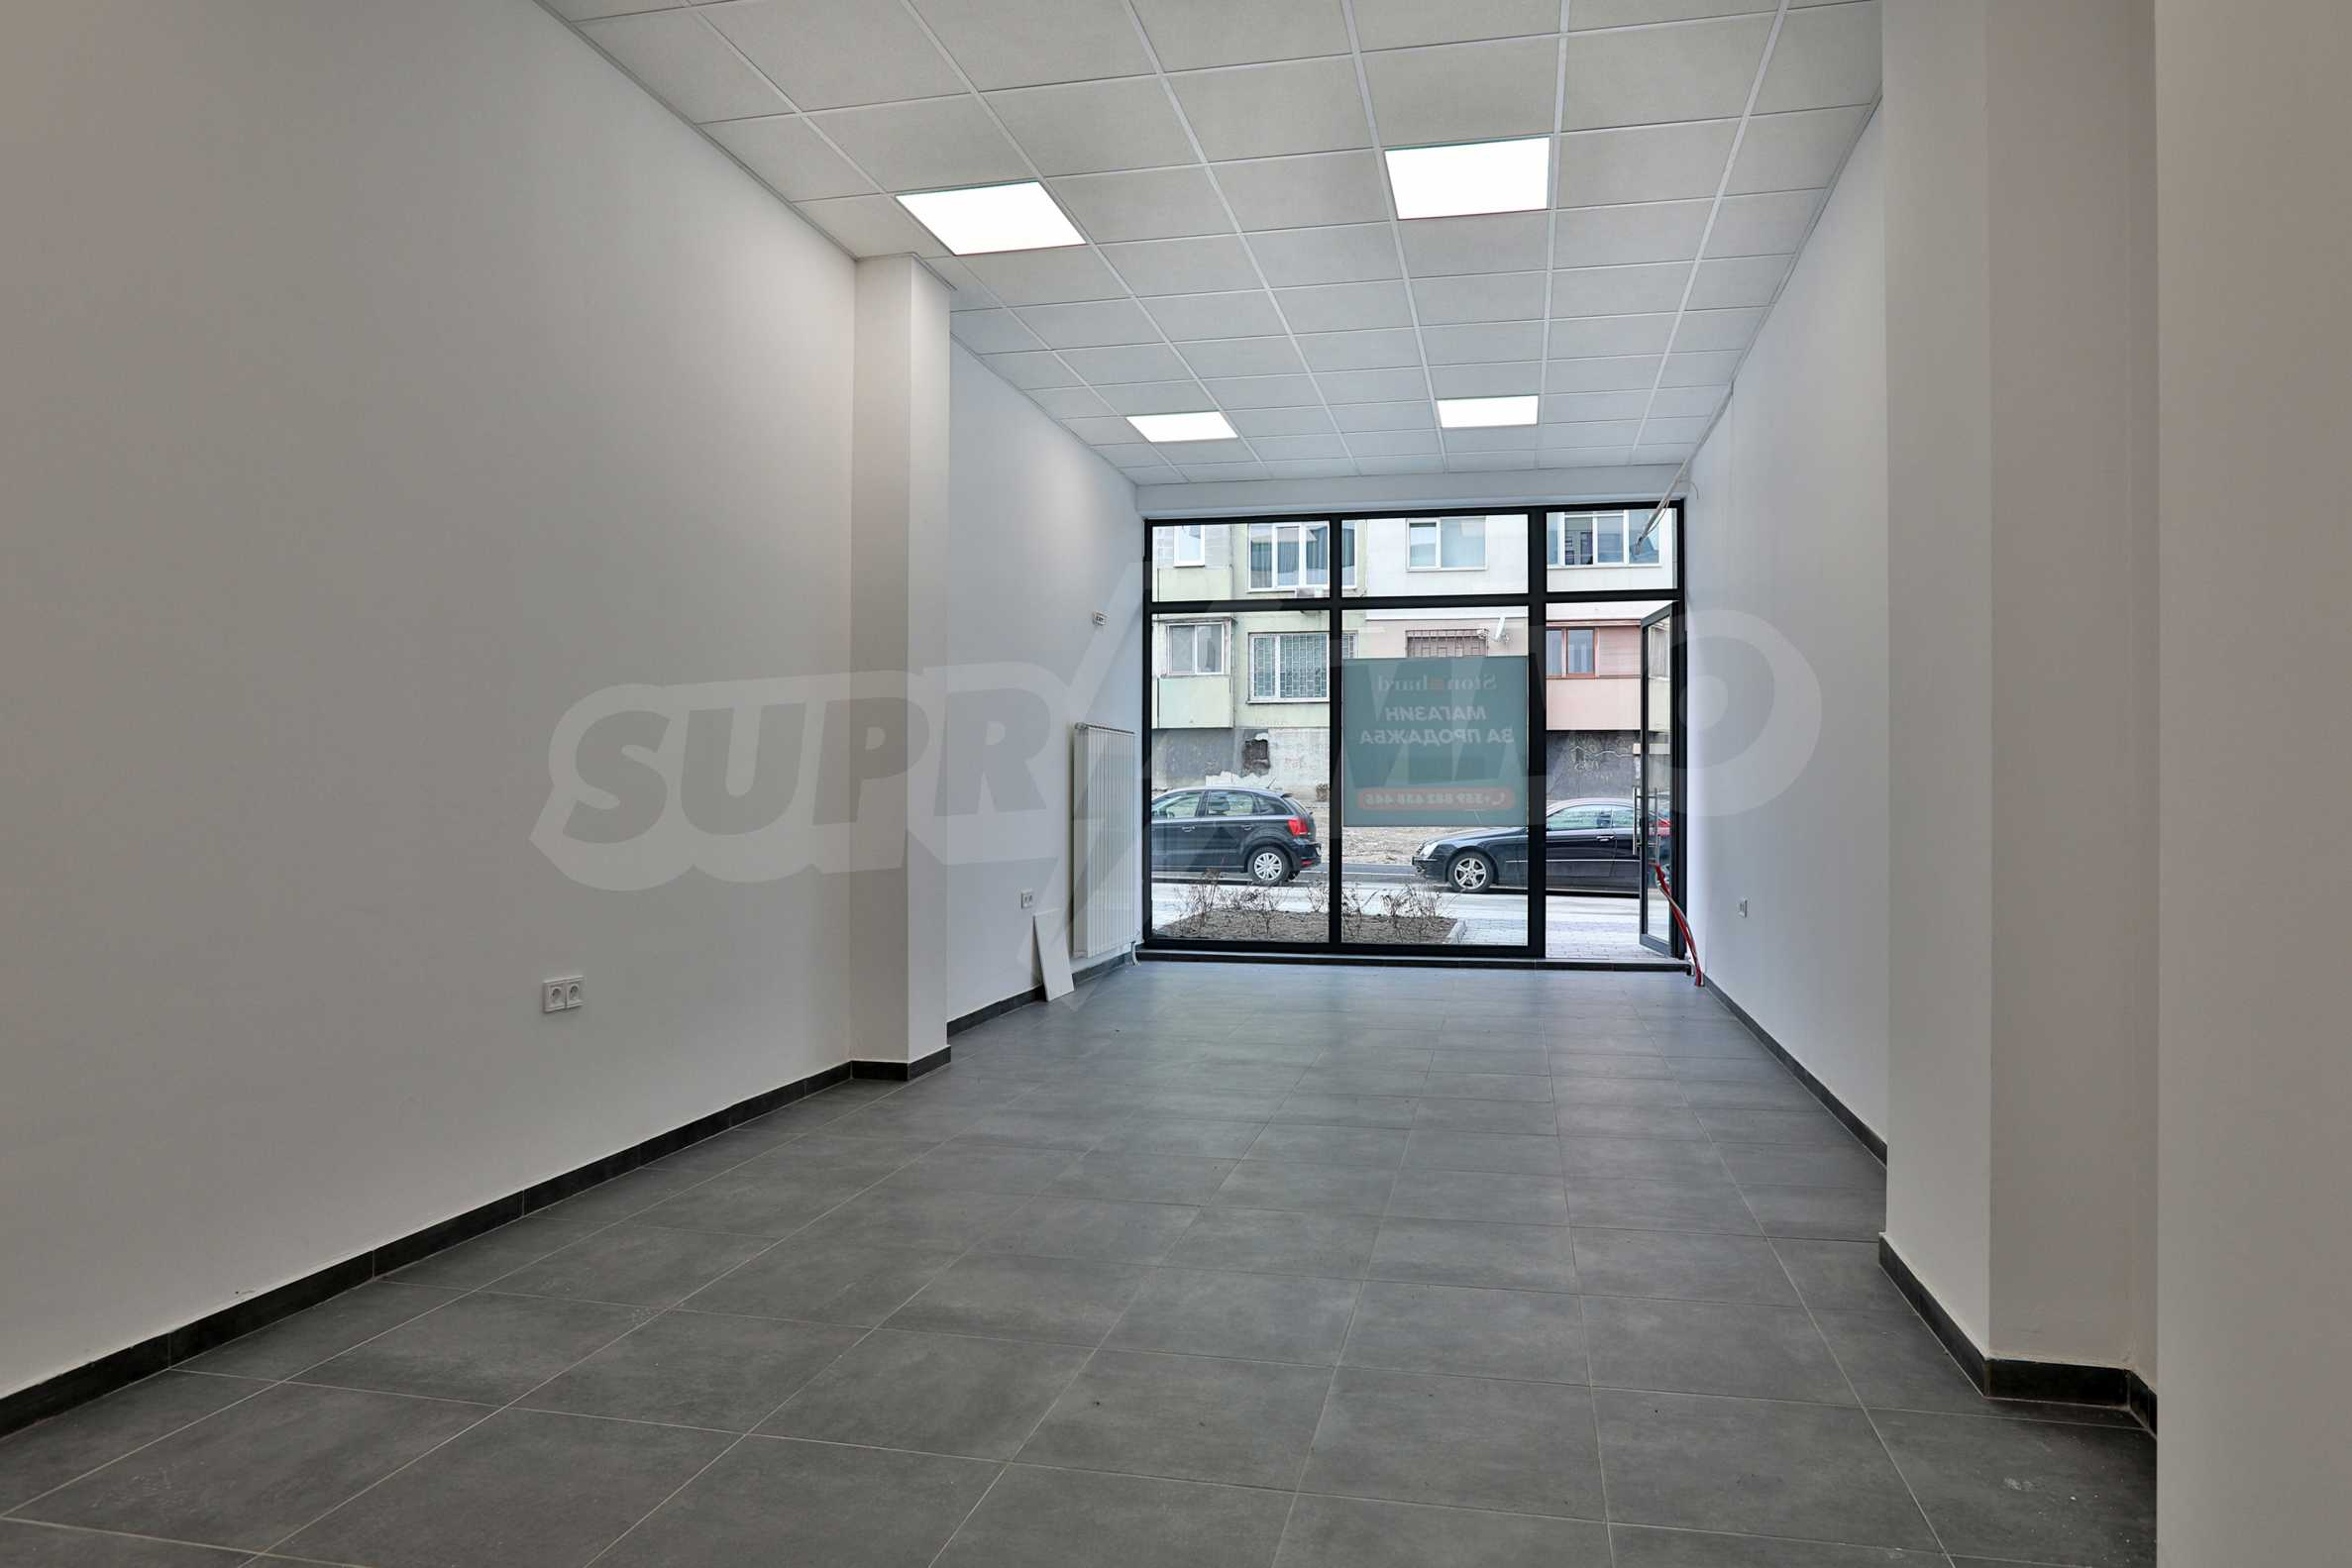 Shops, garages & parking spaces for sale in Comfort - Ovcha Kupel - new building near metro station 11